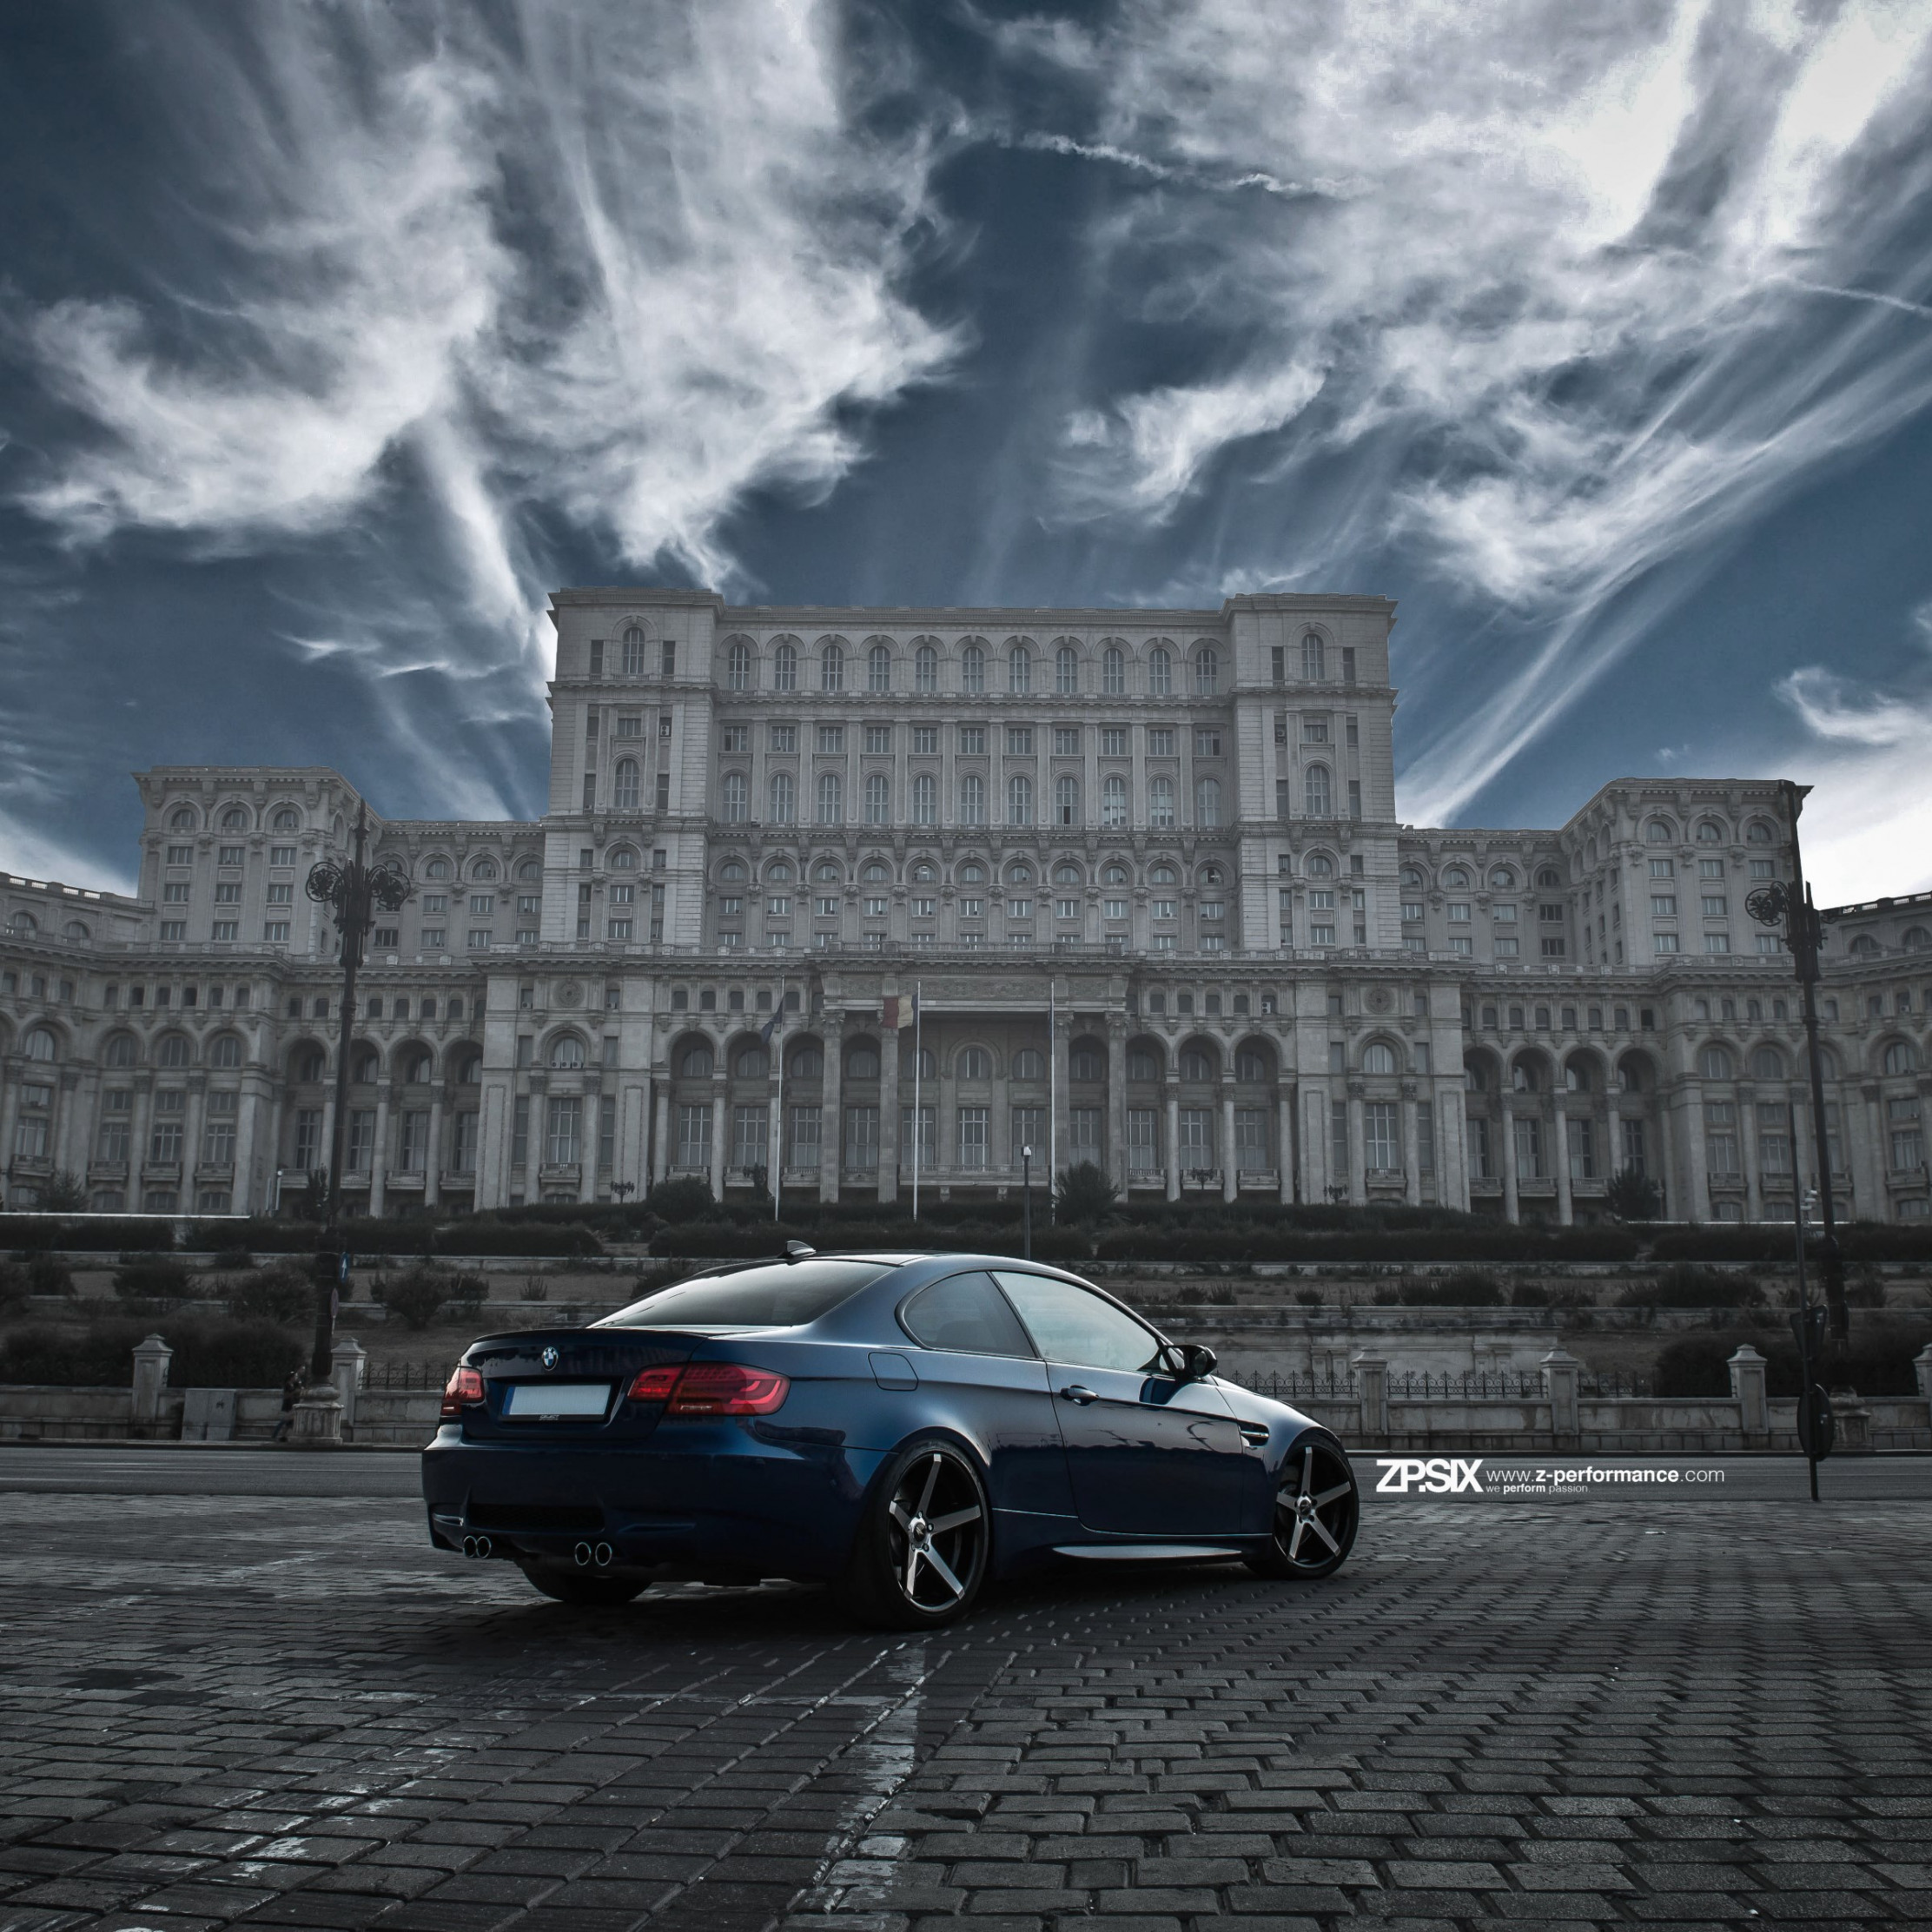 BMW E92 M3 in front of Palace of the Parliament wallpaper 2224x2224